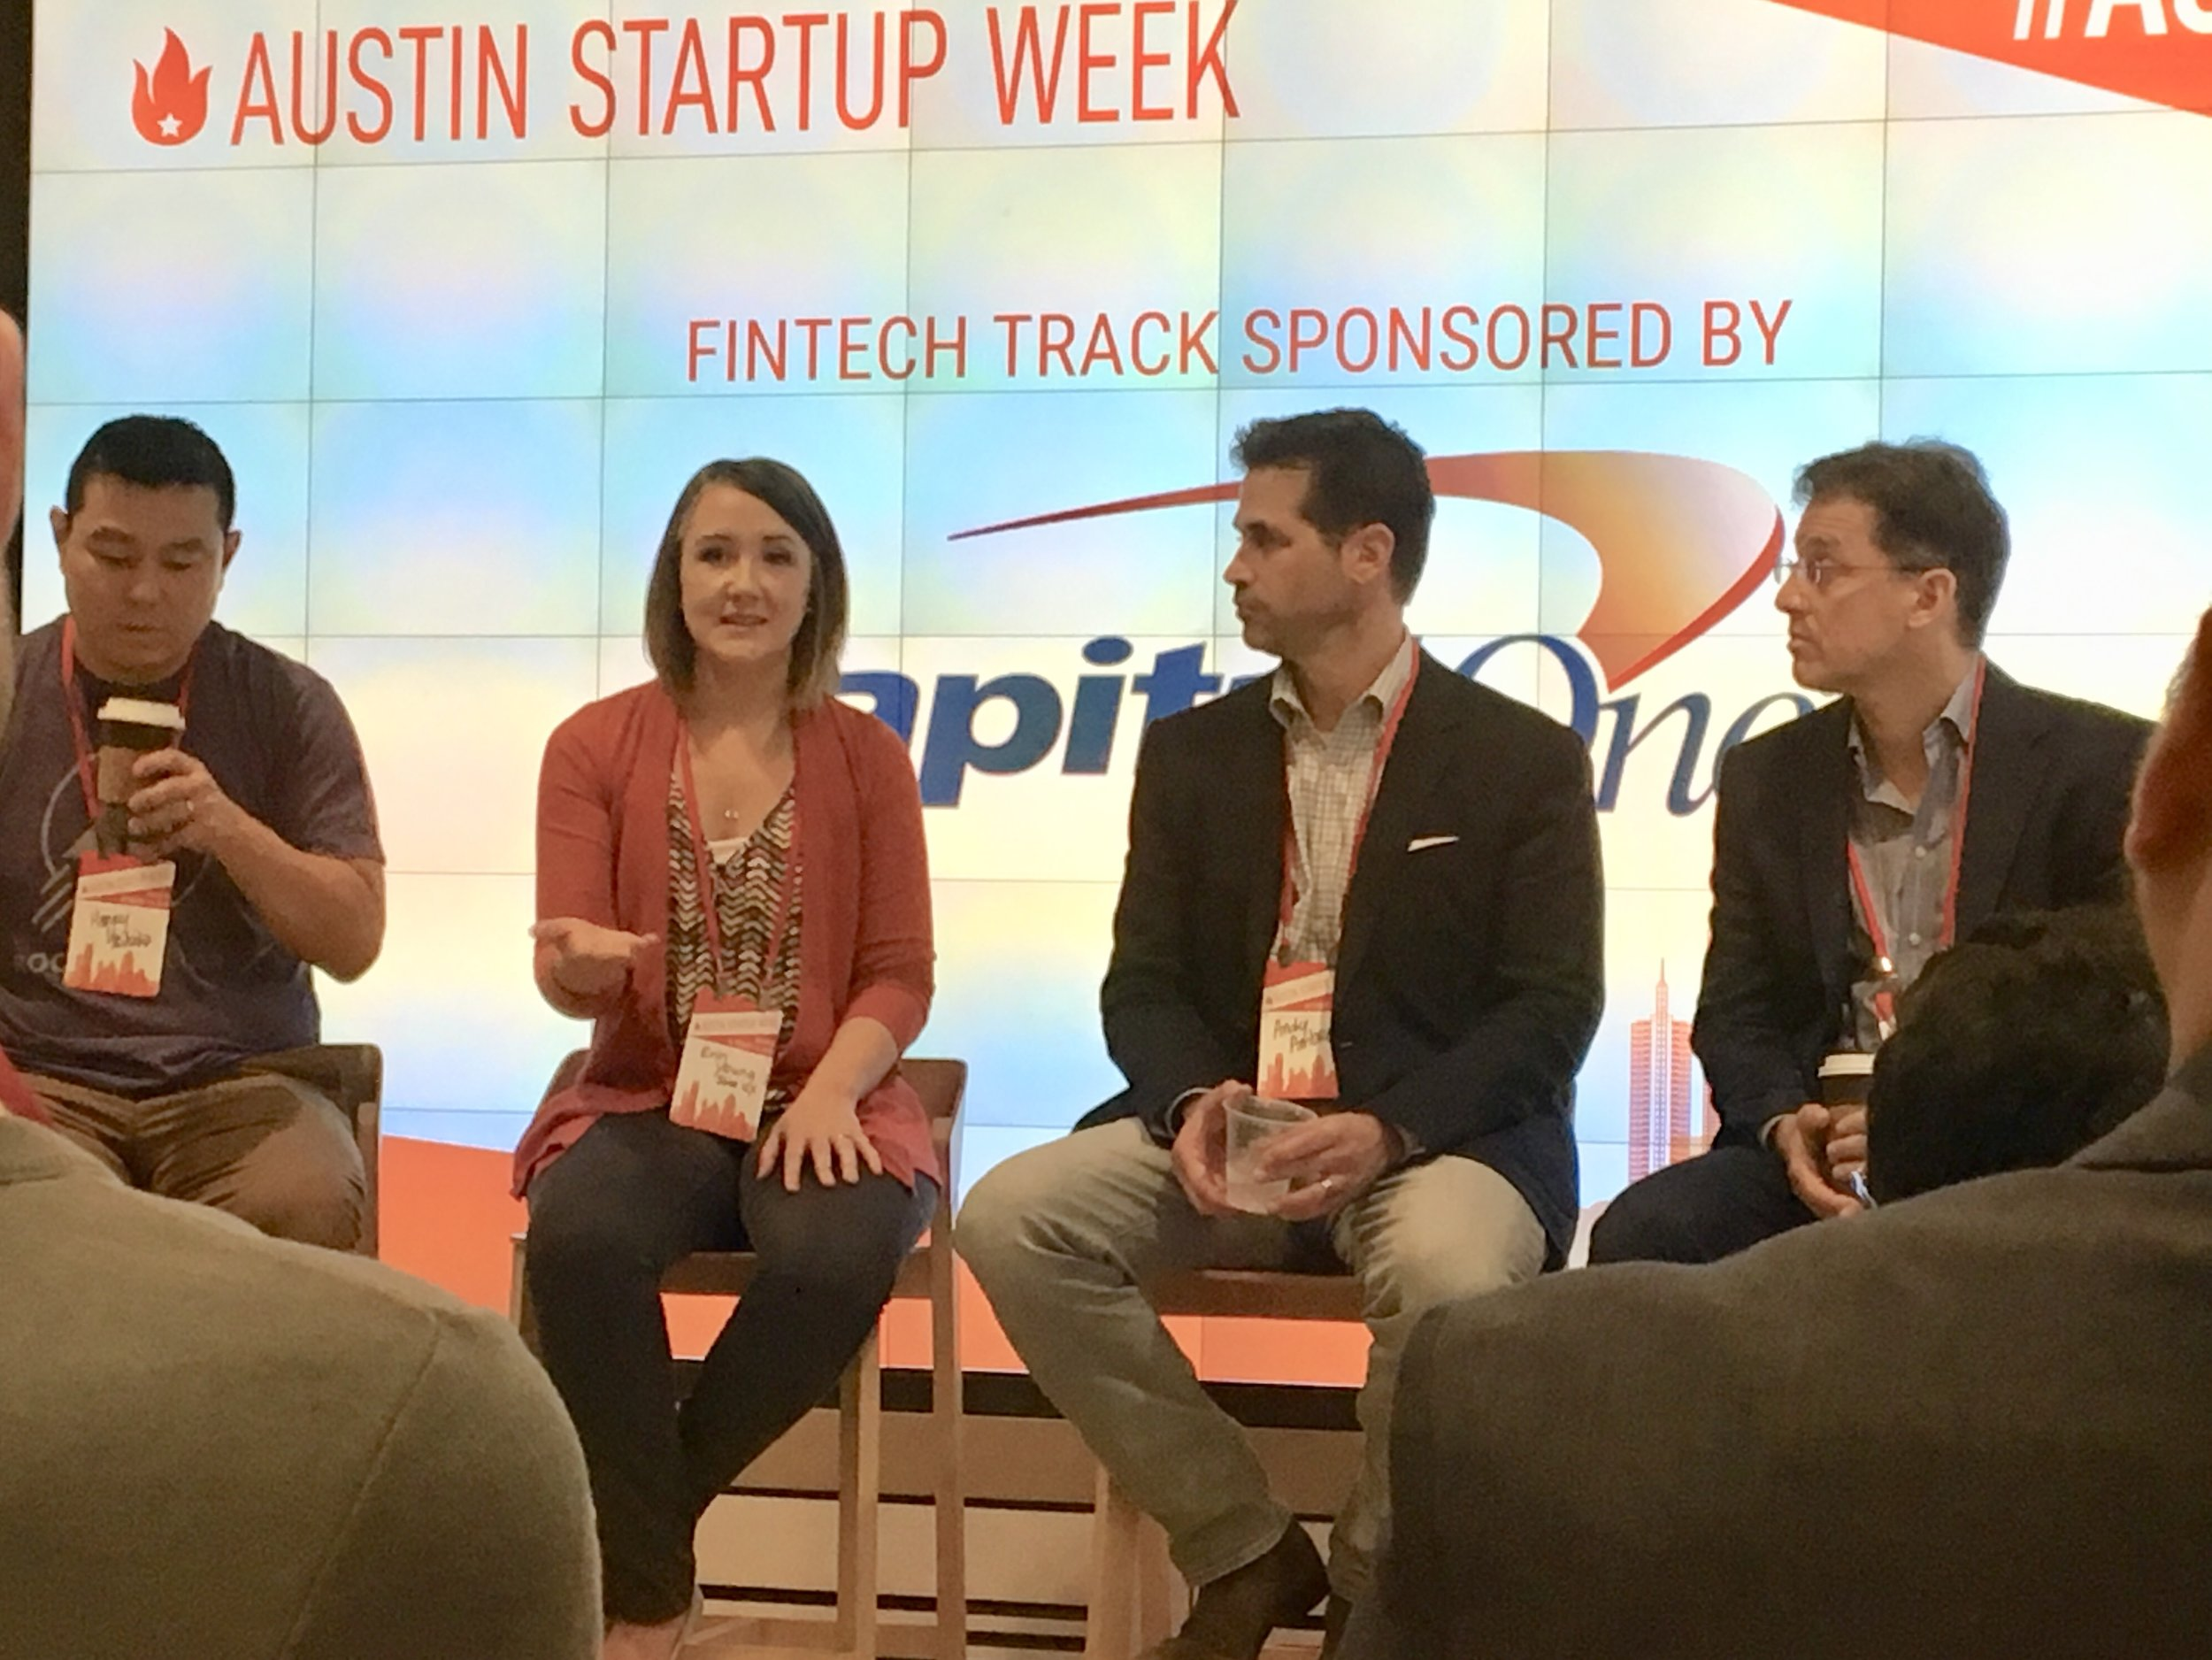 Me speaking at Austin Startup Week 2018.